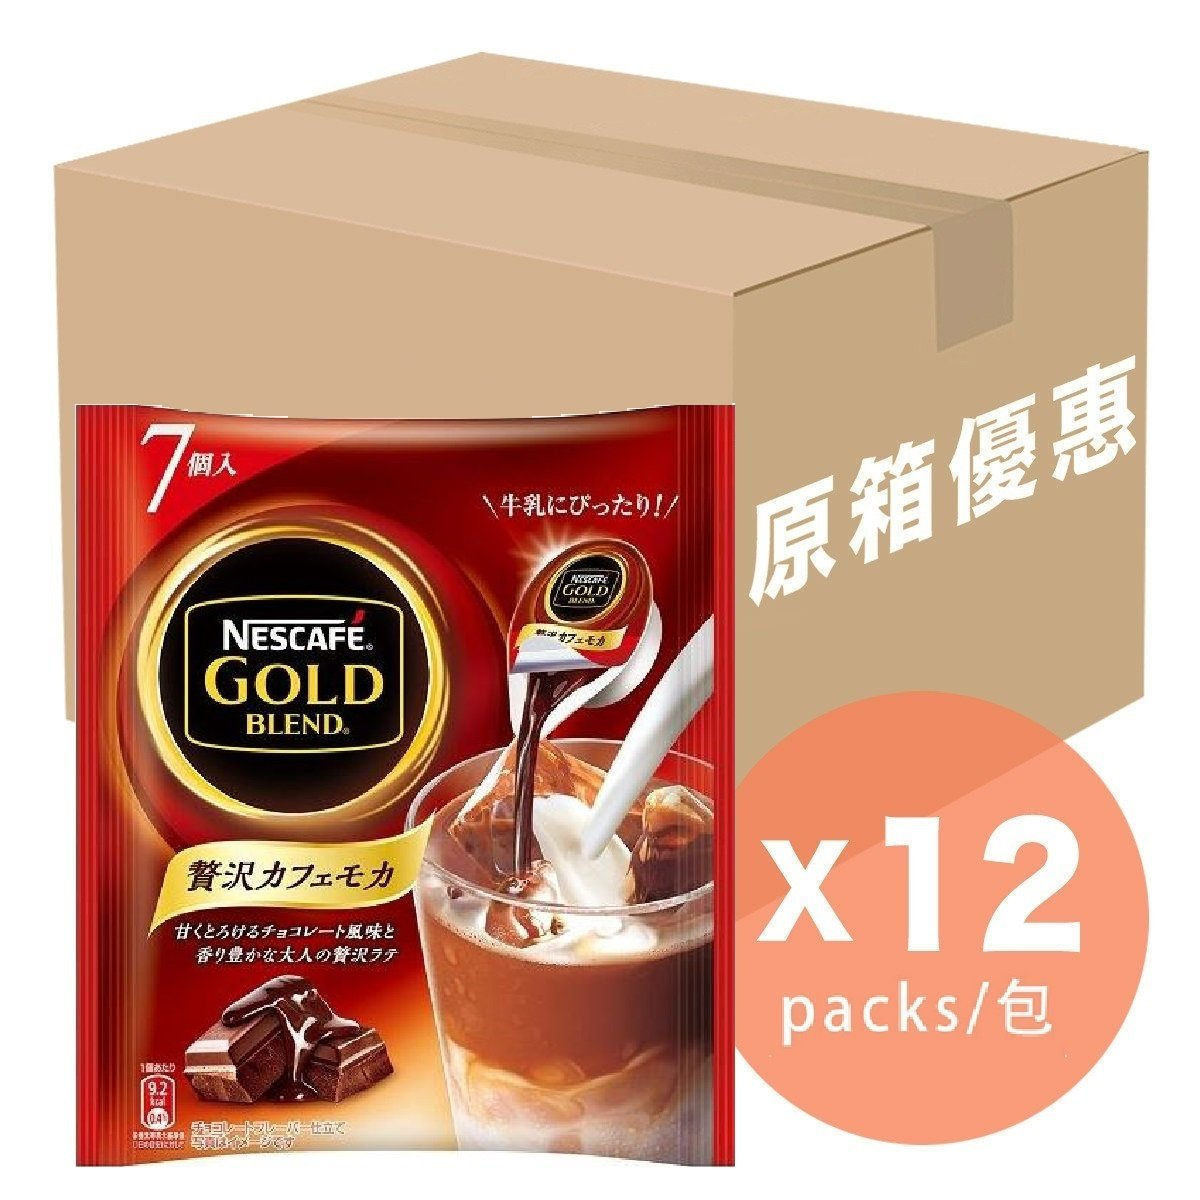 [Full Case] Japanese Import Mocha Liquid Capsule Potion 7pcs x 12packs